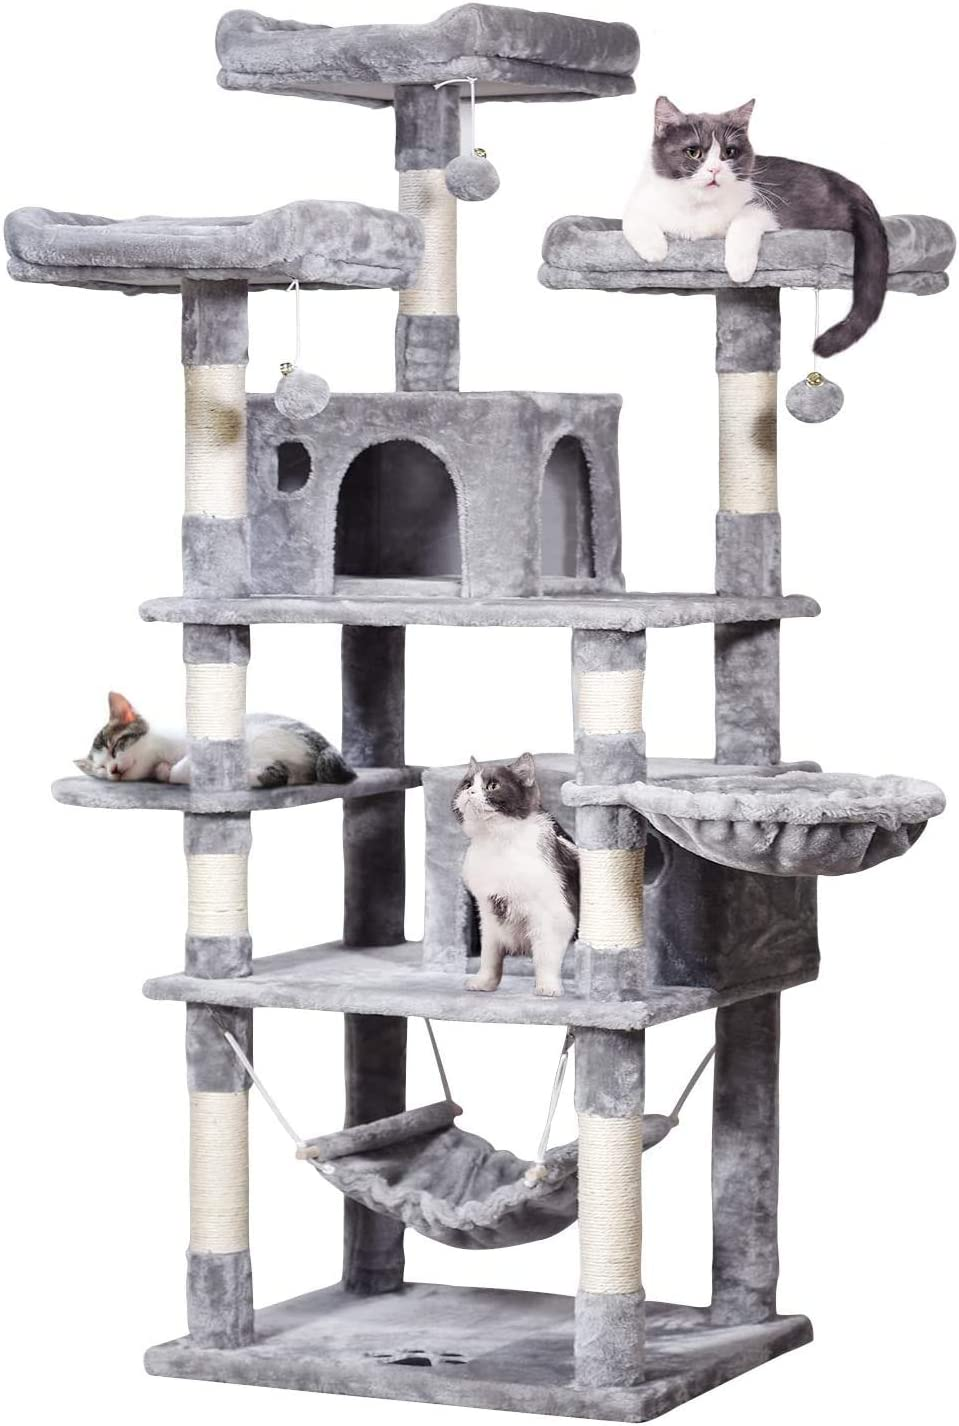 MQ Large Cat Tree Cat Tower with Sisal Scratching Posts Plush Perches Condos Hammock, 67'' Cat Activity Centres Kittens Furniture Play House, Grey/Smoky Grey